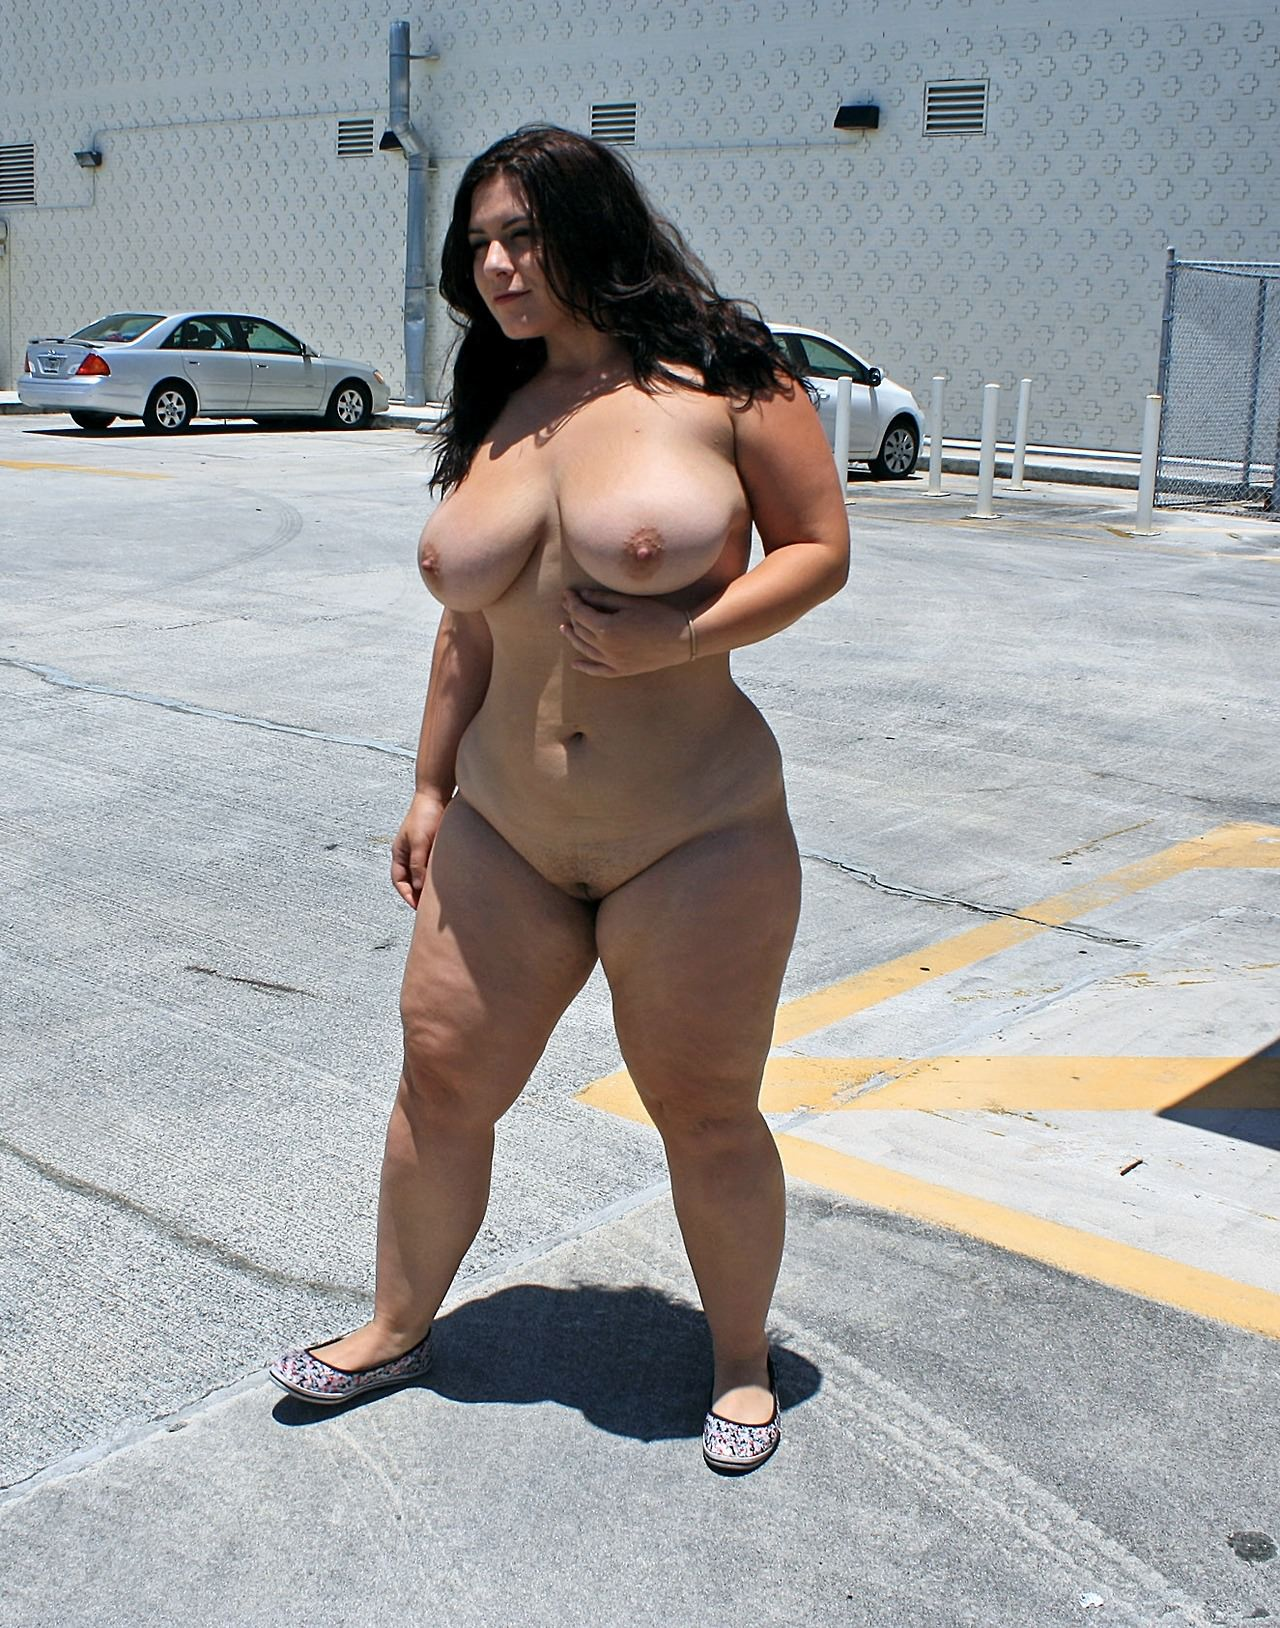 London andrews bbw model